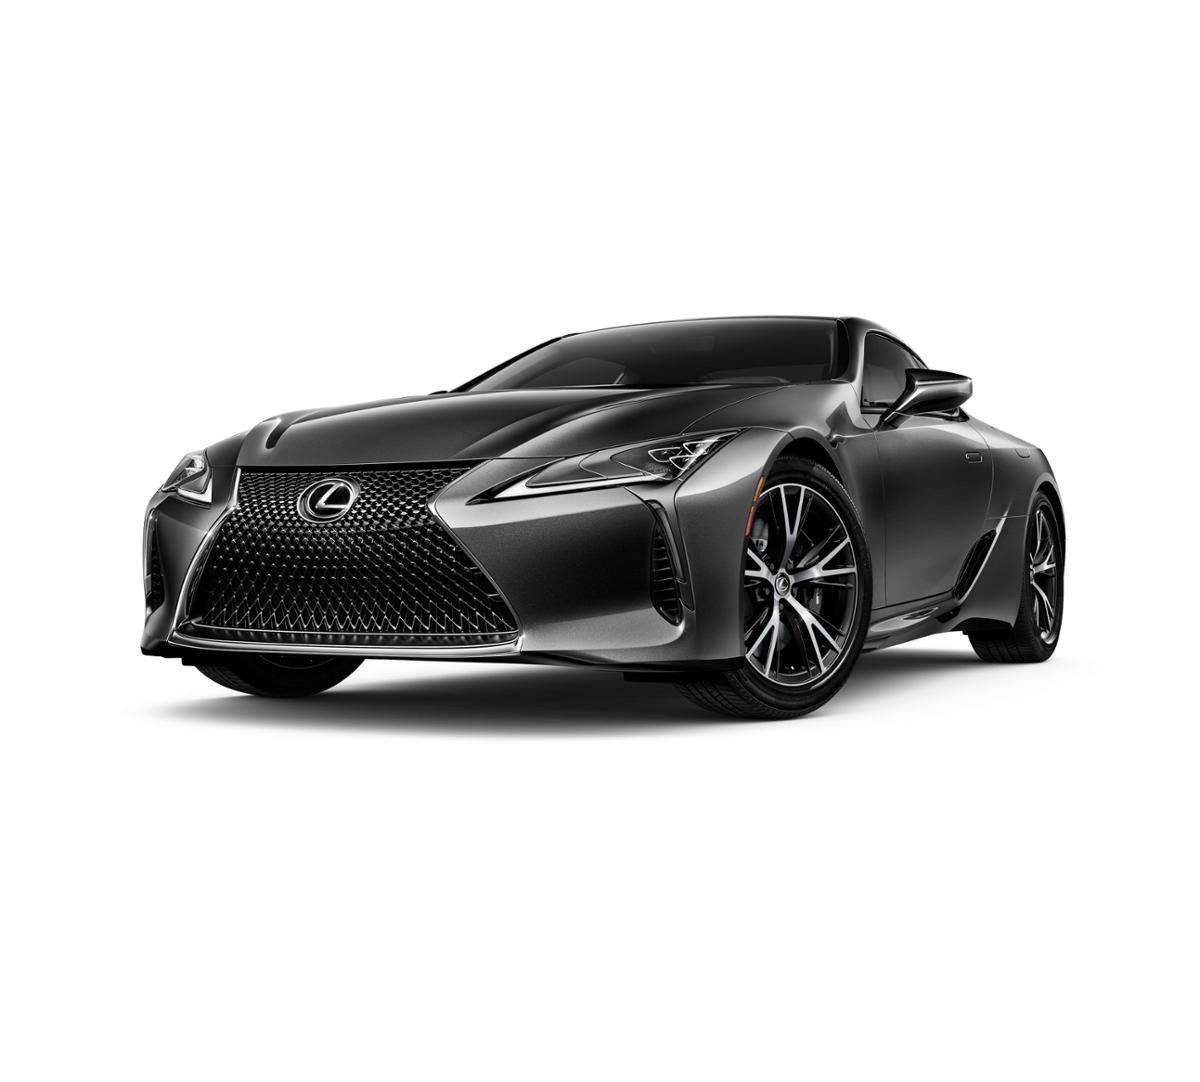 2019 Lexus LC 500 Vehicle Photo in Houston, TX 77074